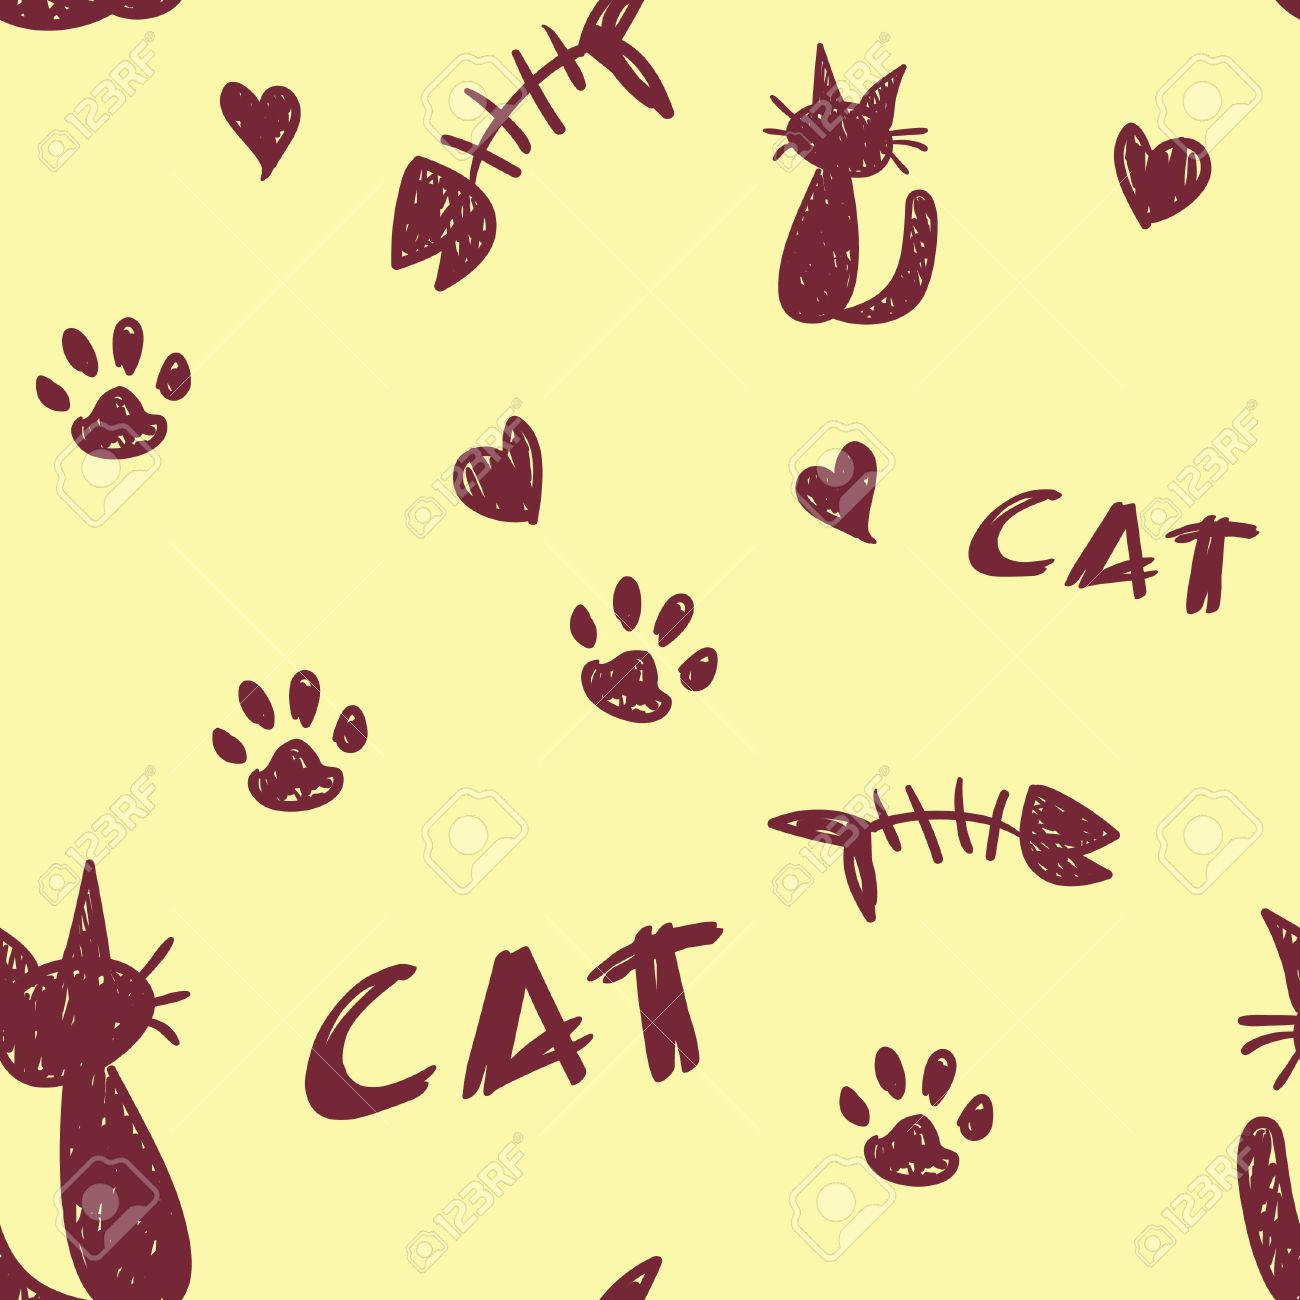 a seamless pattern of cat shapes paw prints and fish bones on a pale yellow